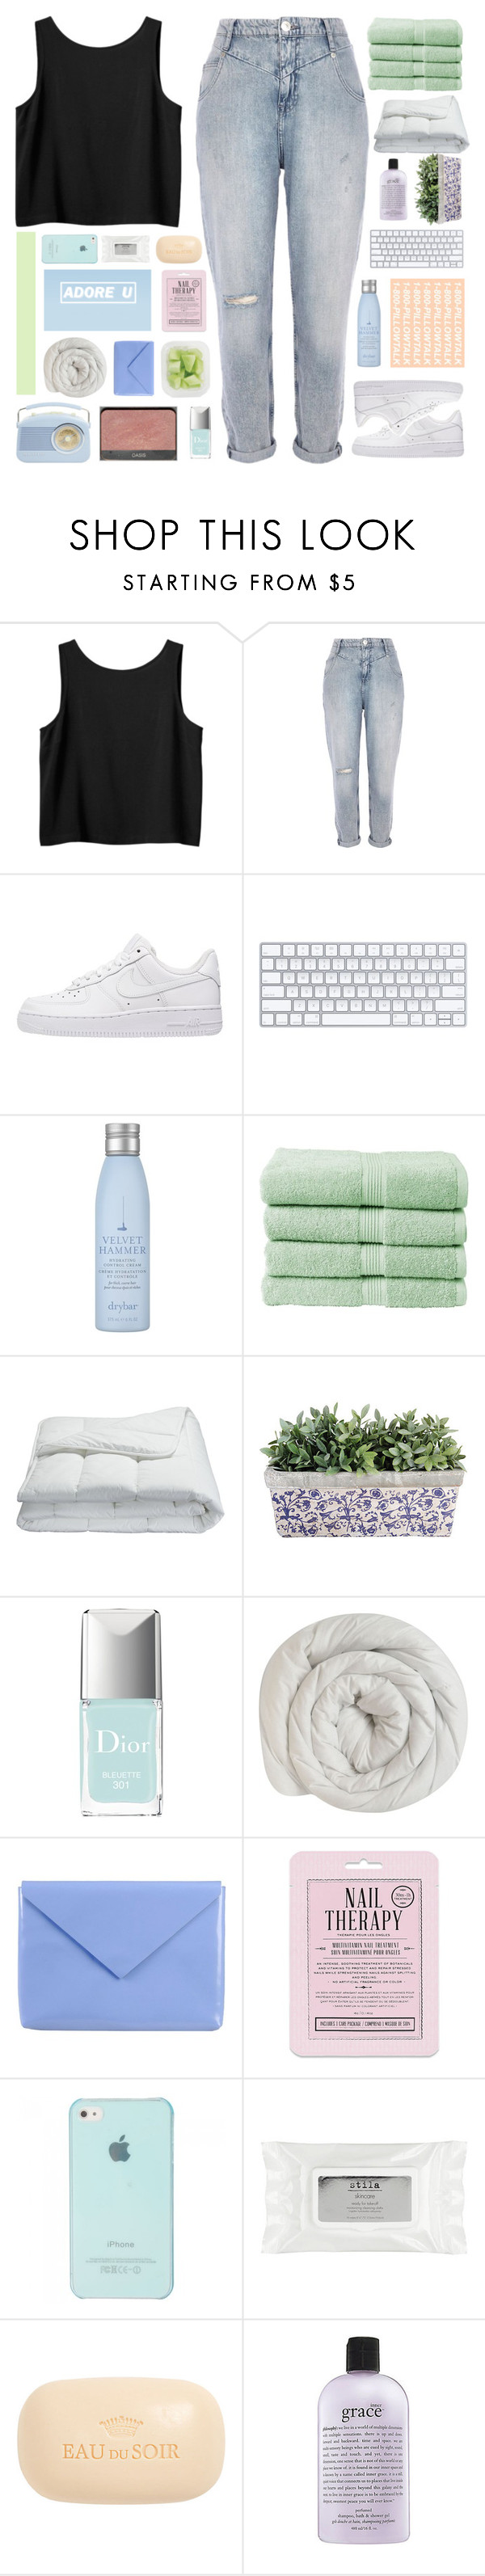 """""""we'll never be as young as we are now"""" by c-actus ❤ liked on Polyvore featuring Monki, River Island, NIKE, Drybar, Christy, Frette, Christian Dior, Acne Studios, Love 21 and Stila"""